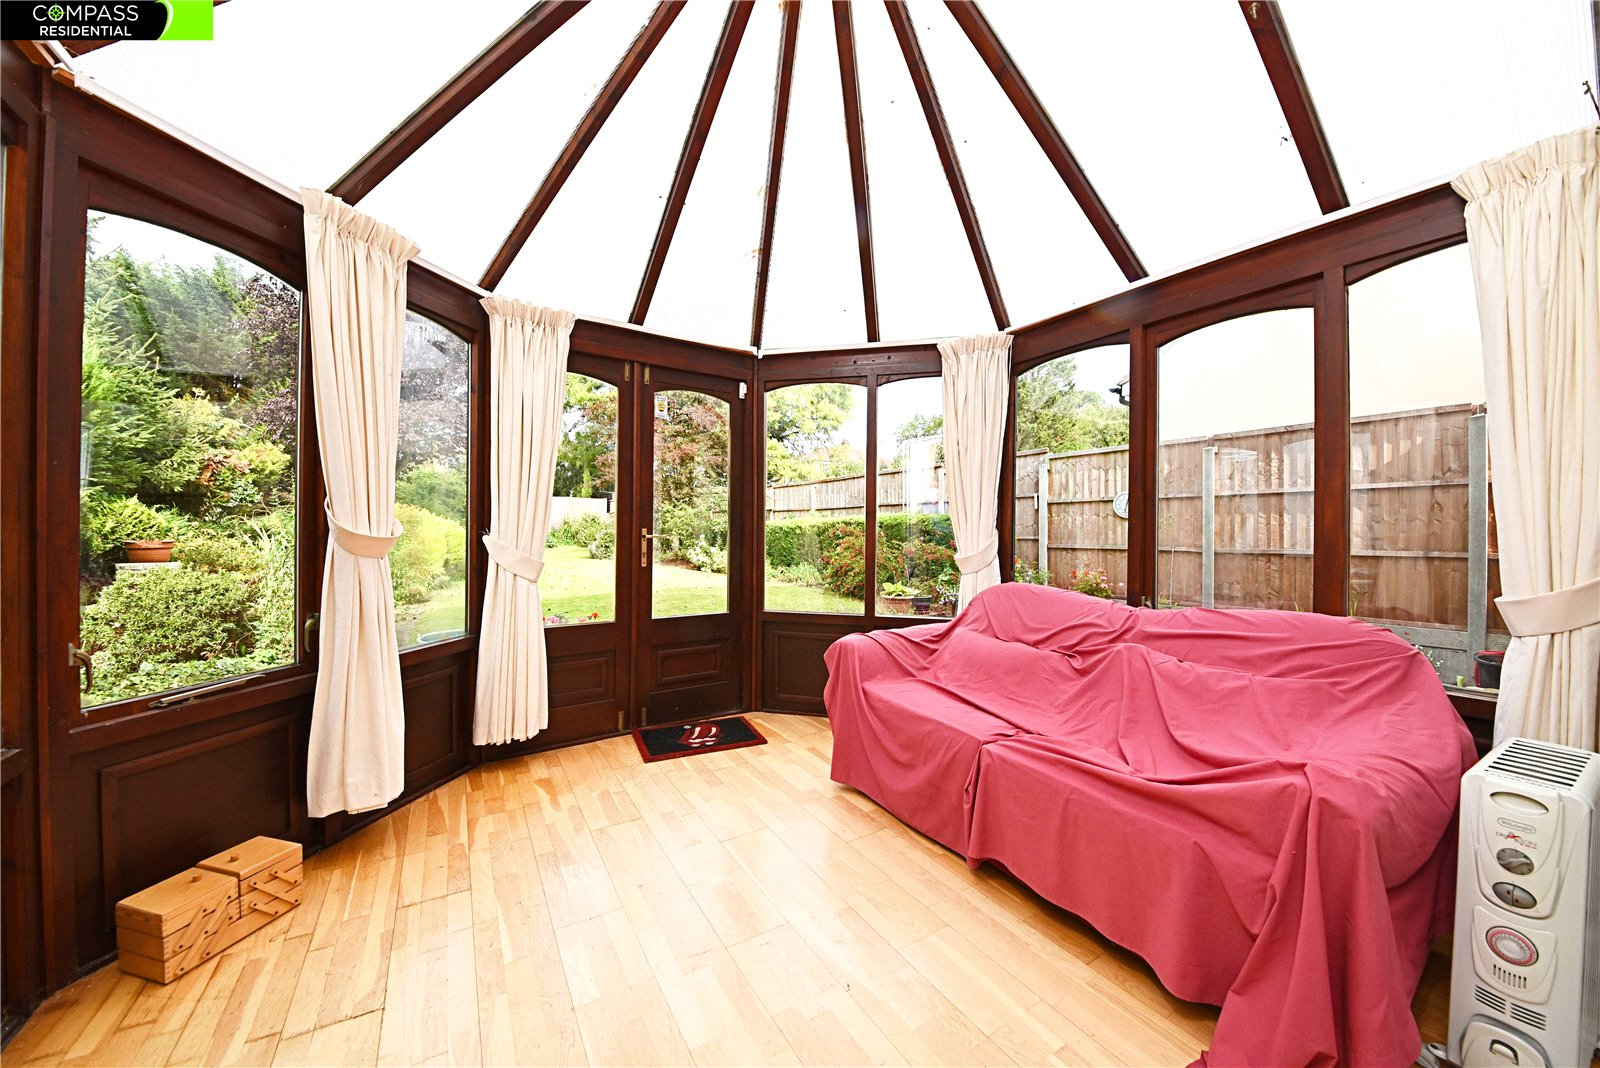 3 bed house for sale in Totteridge, N20 8HL  - Property Image 2